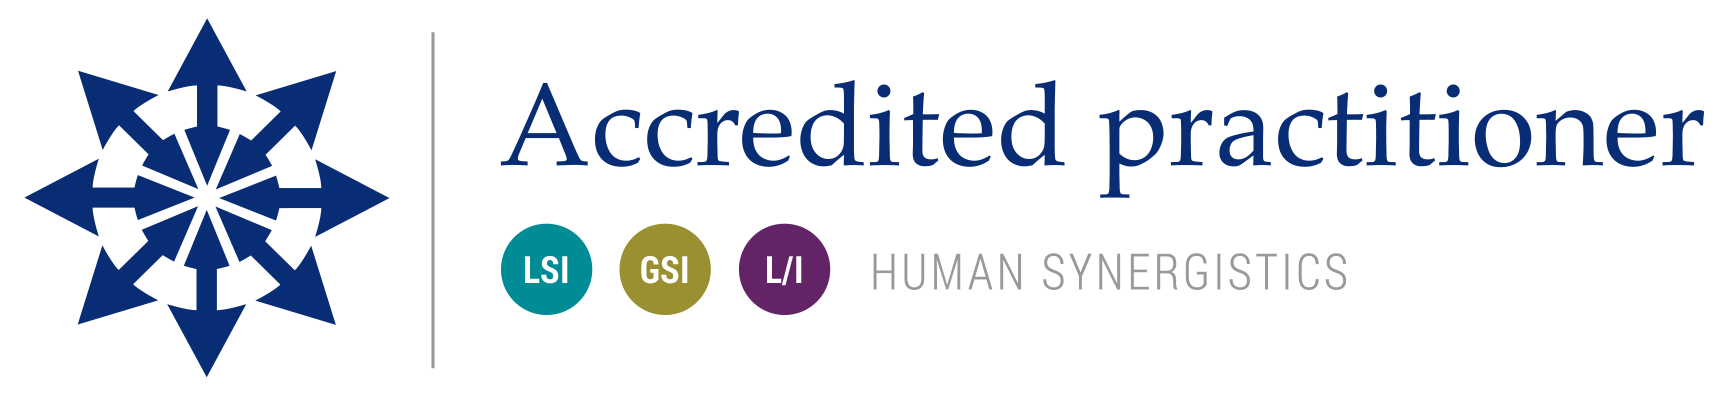 accredited-practitioner---lsi-gsi-lif88bbbca177163ec93f0ff0000c042f9.png